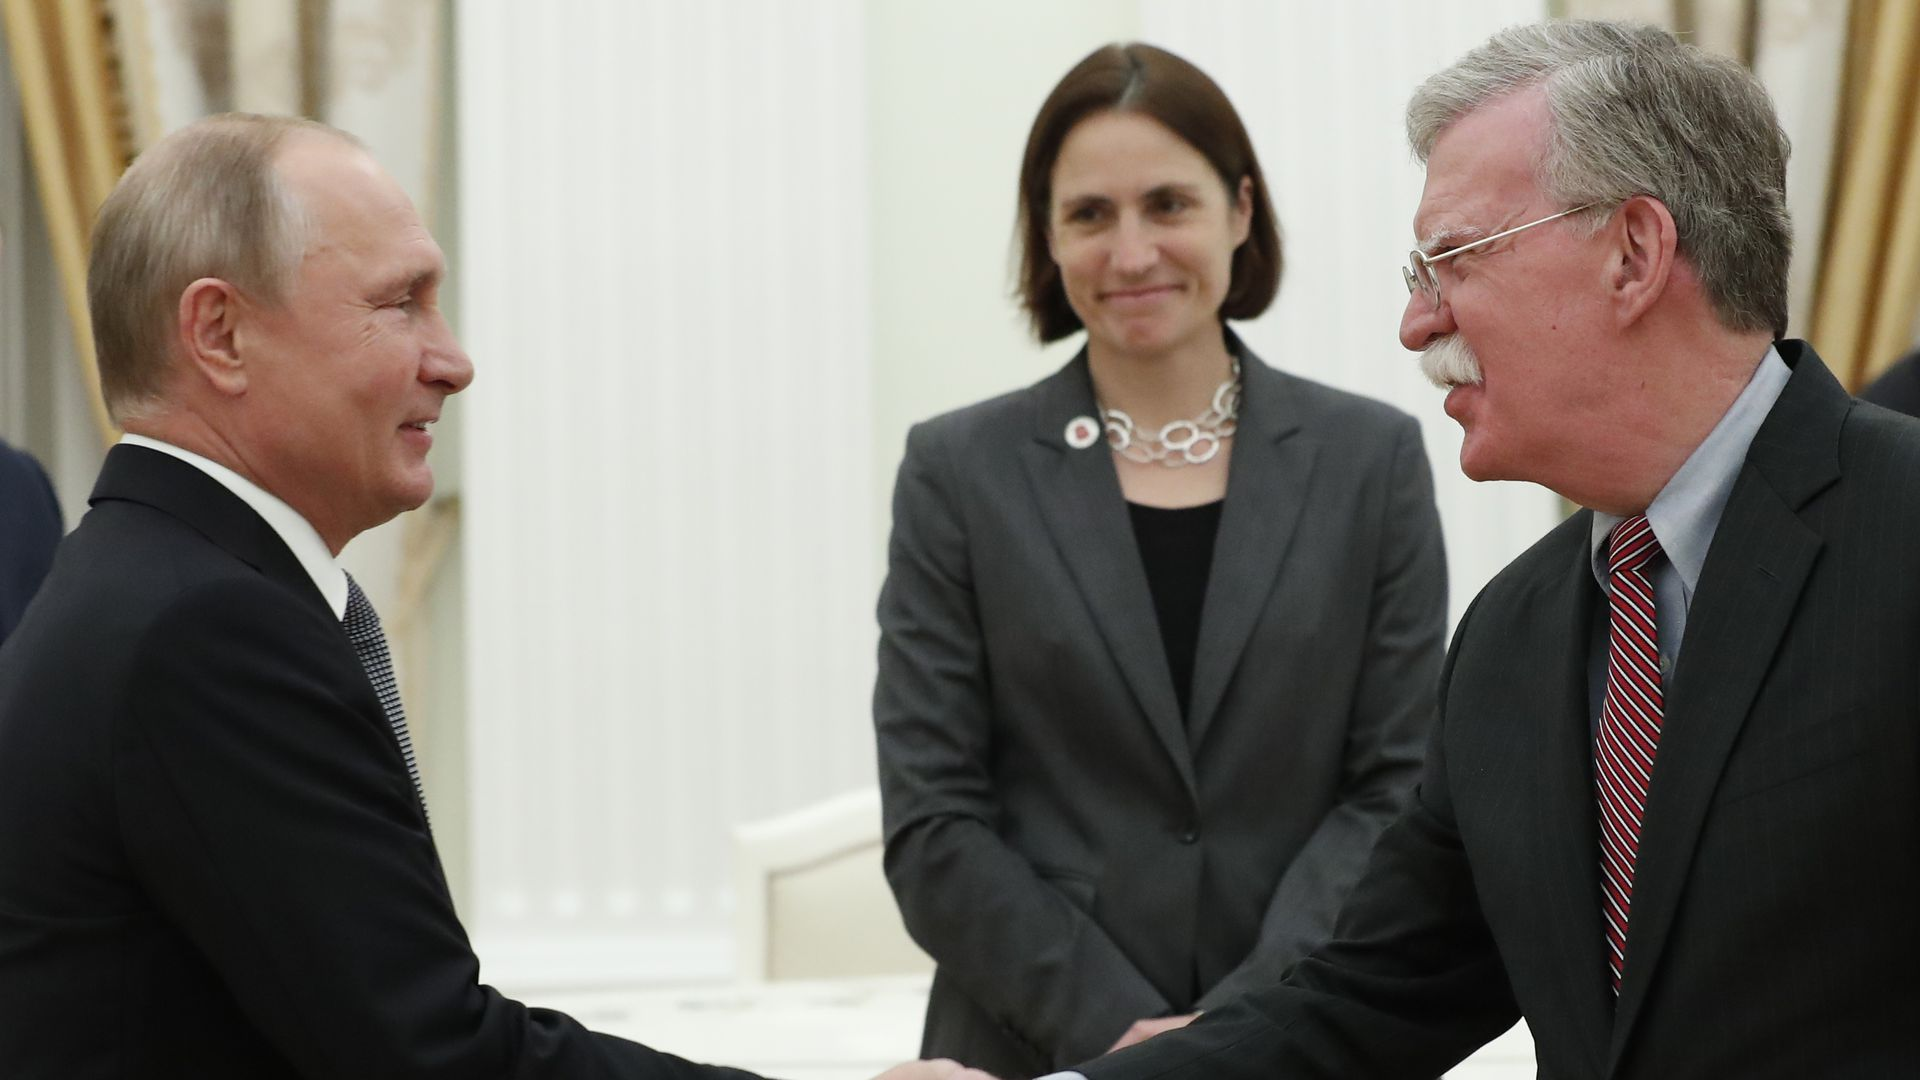 Russian President Vladimir Putin shakes hands with John Bolton, National Security Adviser to the US President, during a meeting at the Kremlin in Moscow on October 23, 2018.